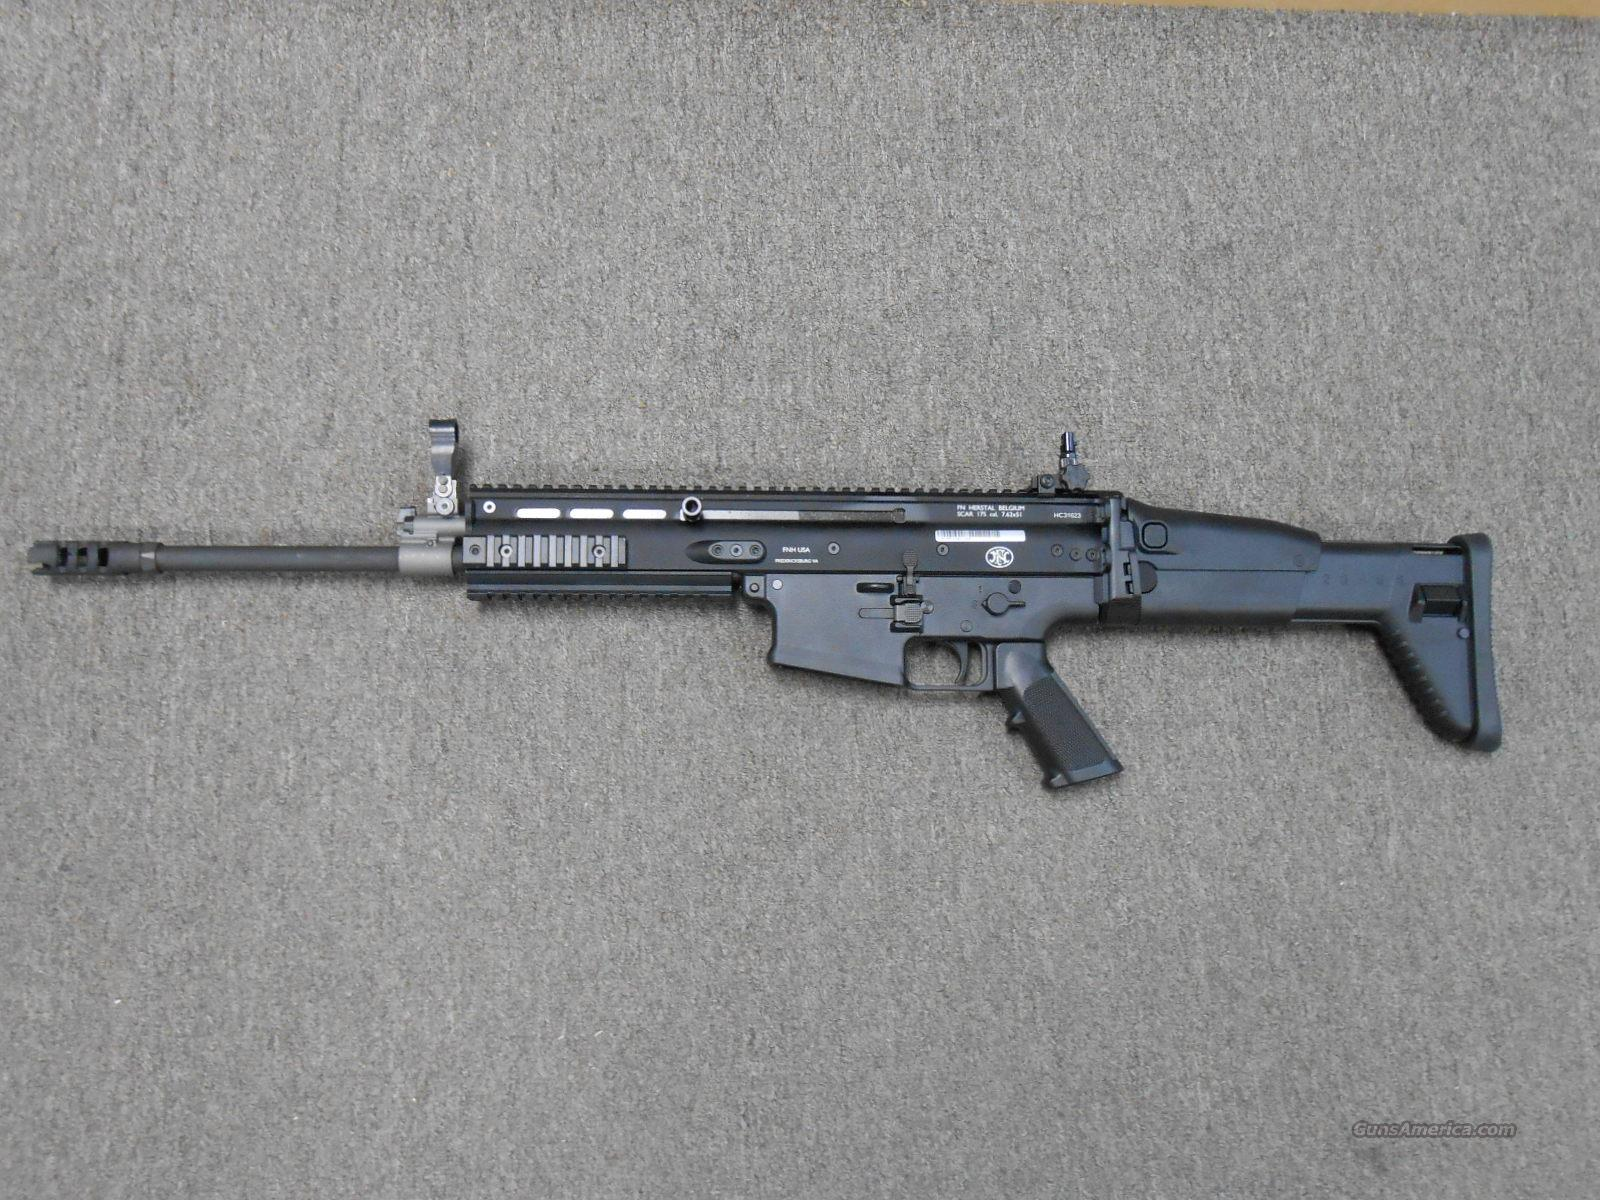 FNH Scar 17S 308 Blk NIB  Guns > Rifles > FNH - Fabrique Nationale (FN) Rifles > Semi-auto > Other